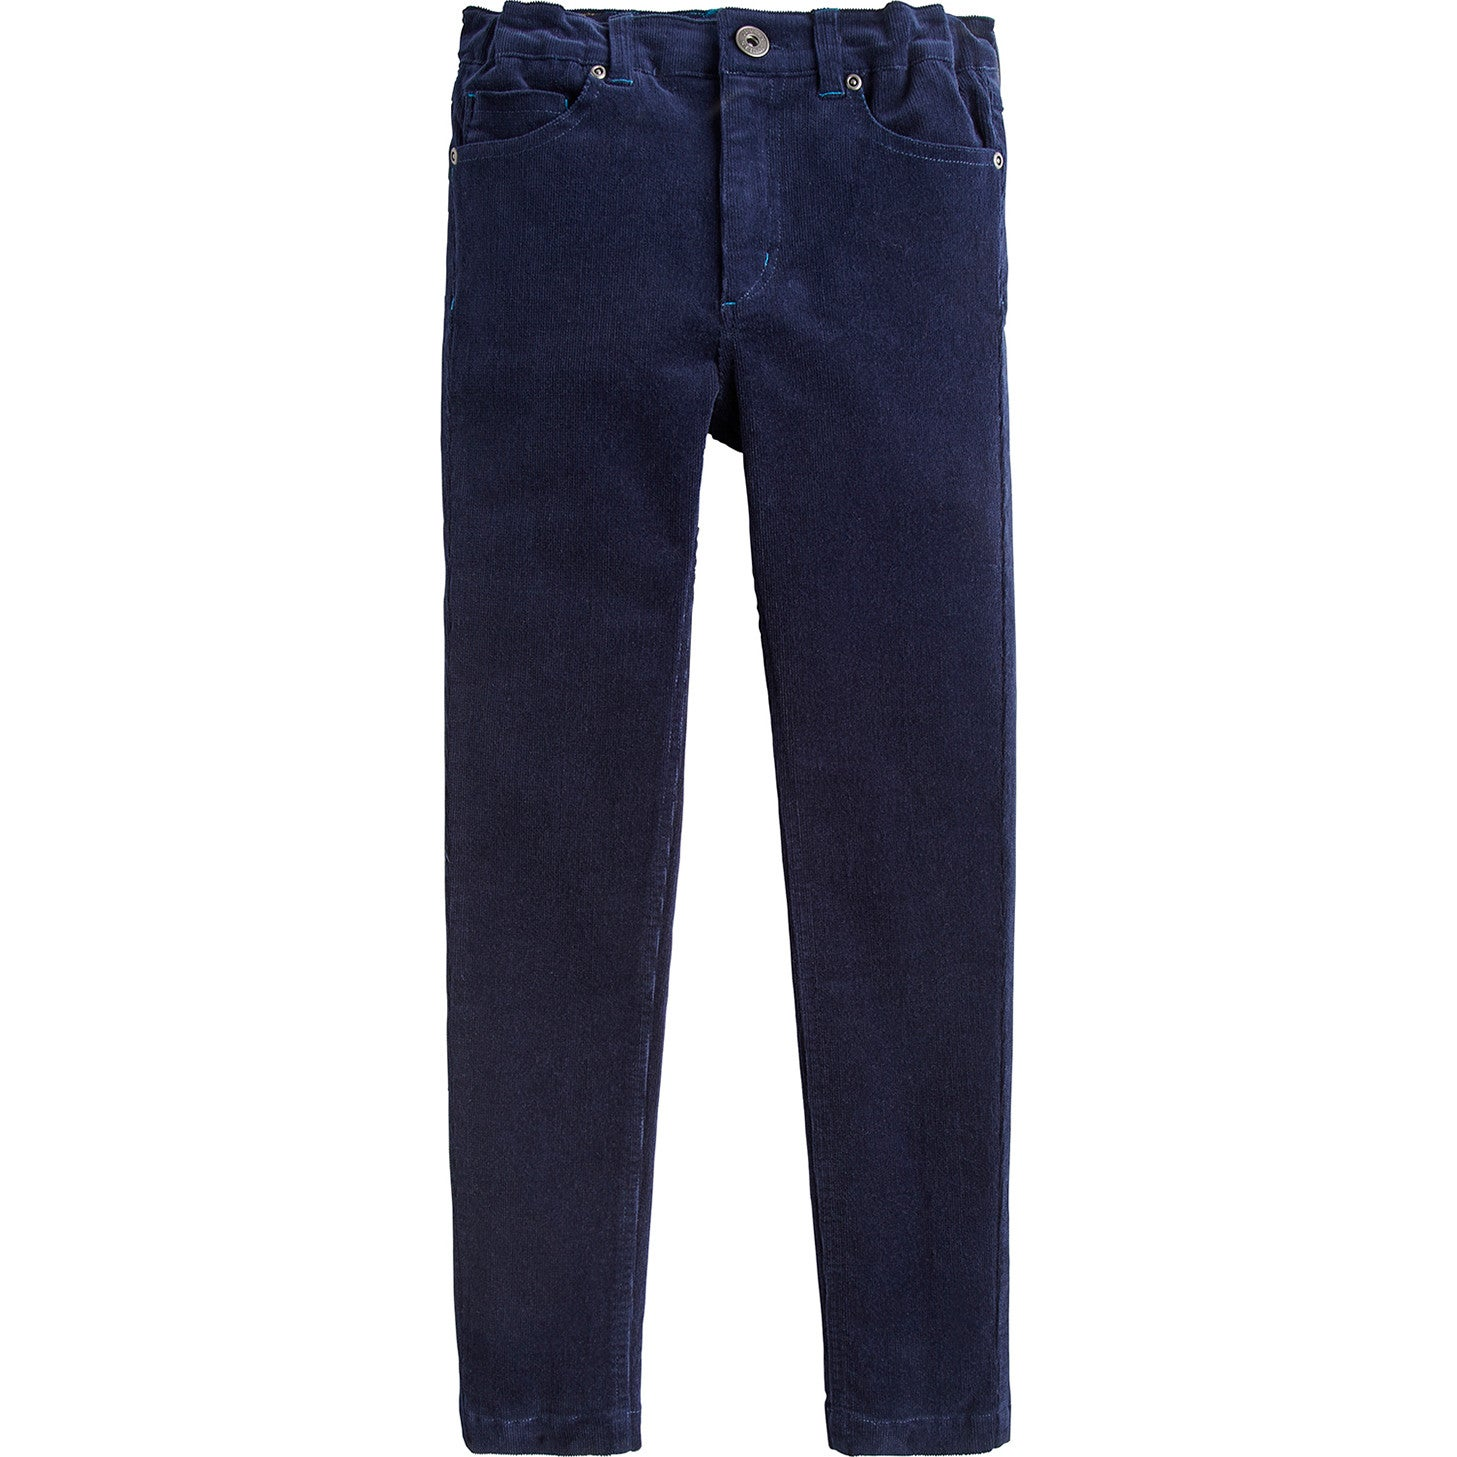 chino Rideaway Jett Cord from Pocket Calzón Joules Five lJTcK1uF3